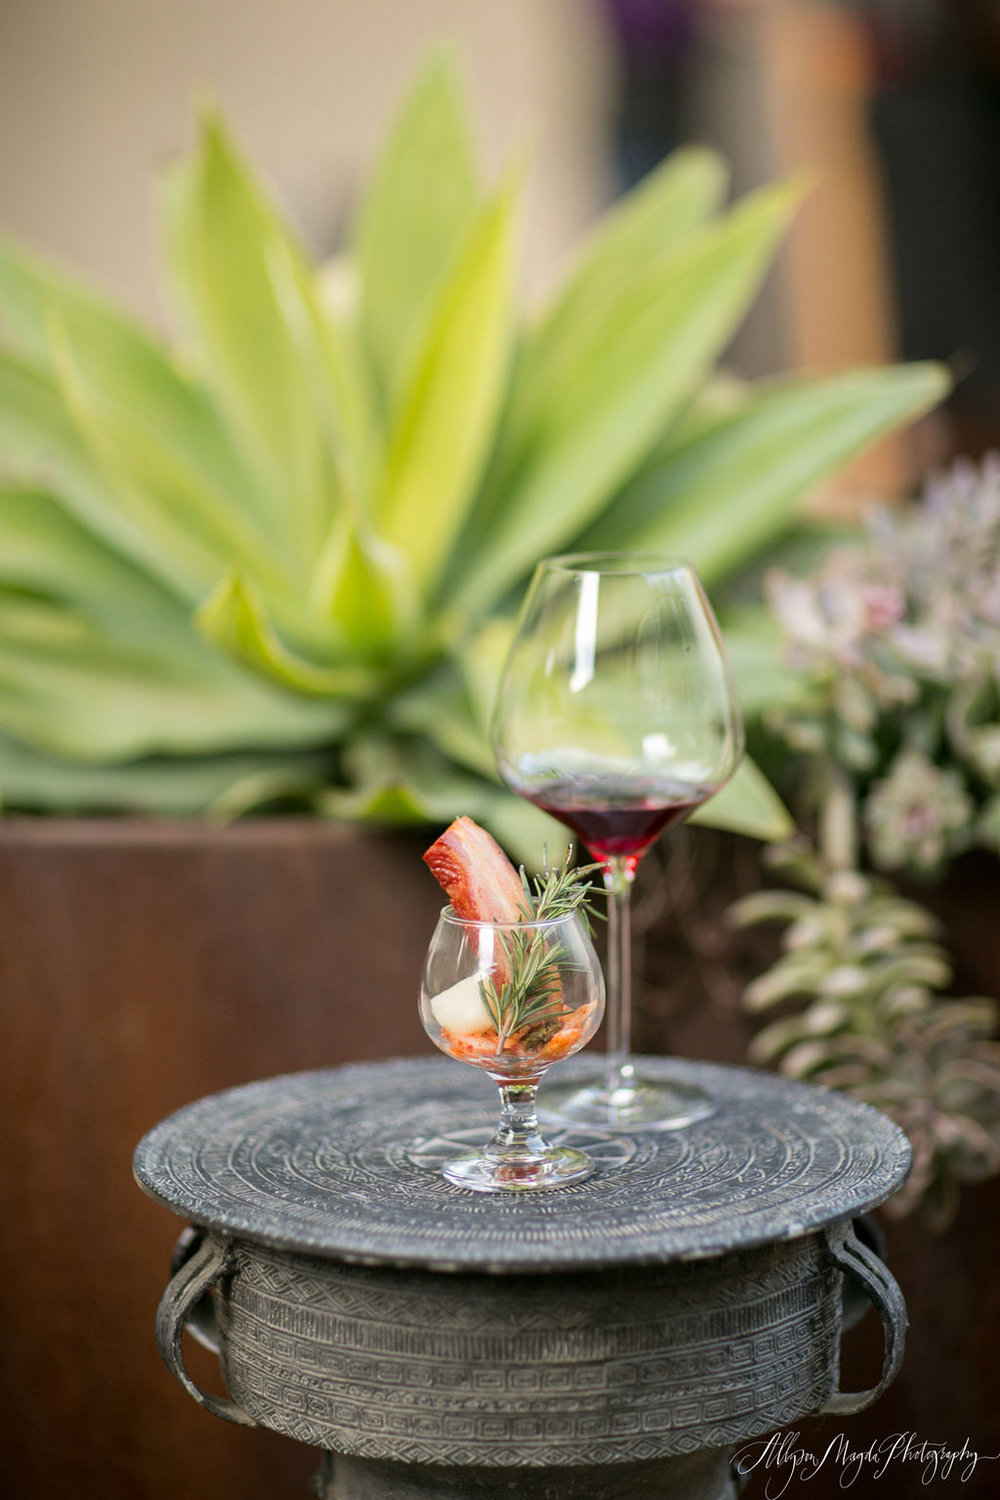 www.SantaBarbaraWedding.com   Presq'uile Winery   First and Oak Catering   Wedding Planners   Allyson Magda Photography